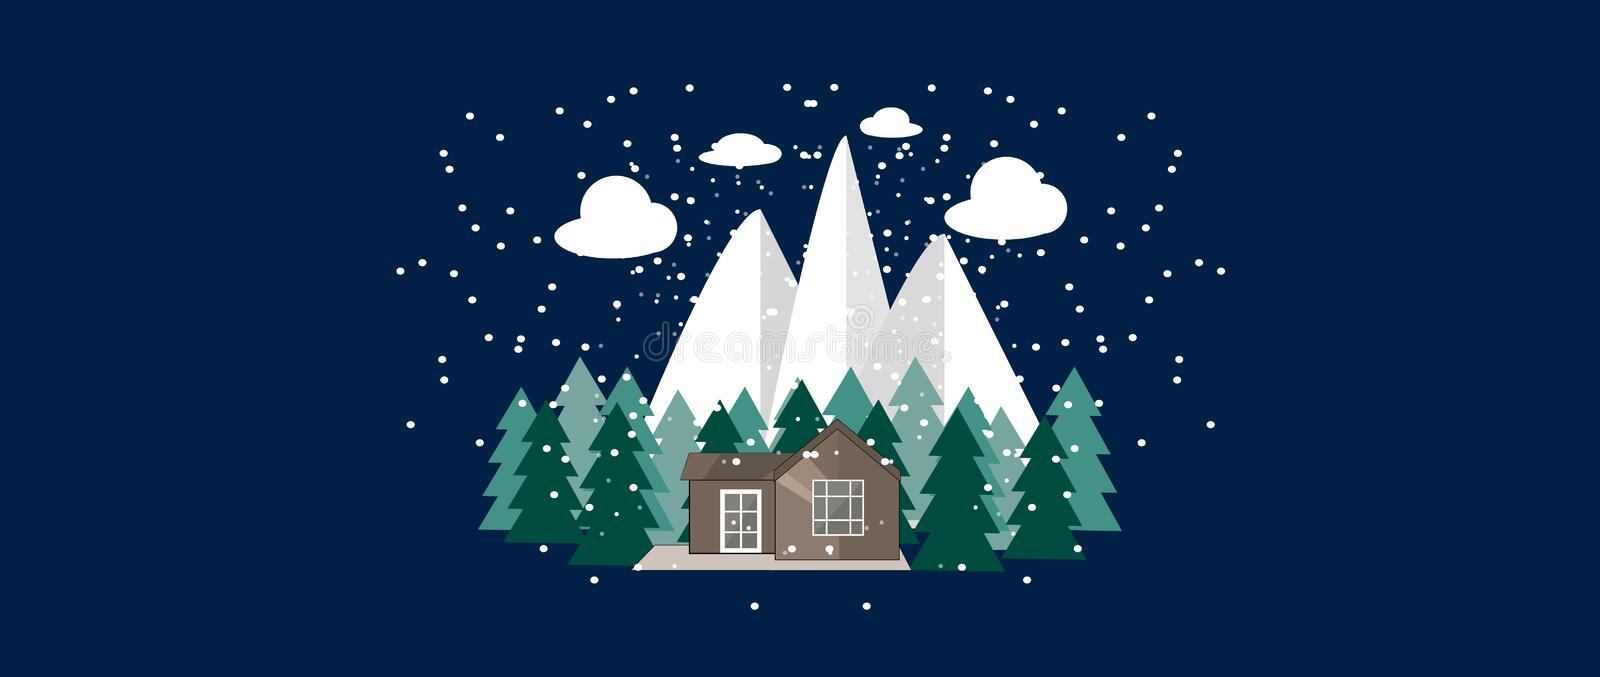 Winter nature landscape with Cute little house, fir trees. Mountains and snowflakes. Winter Background.Vector illustration royalty free illustration